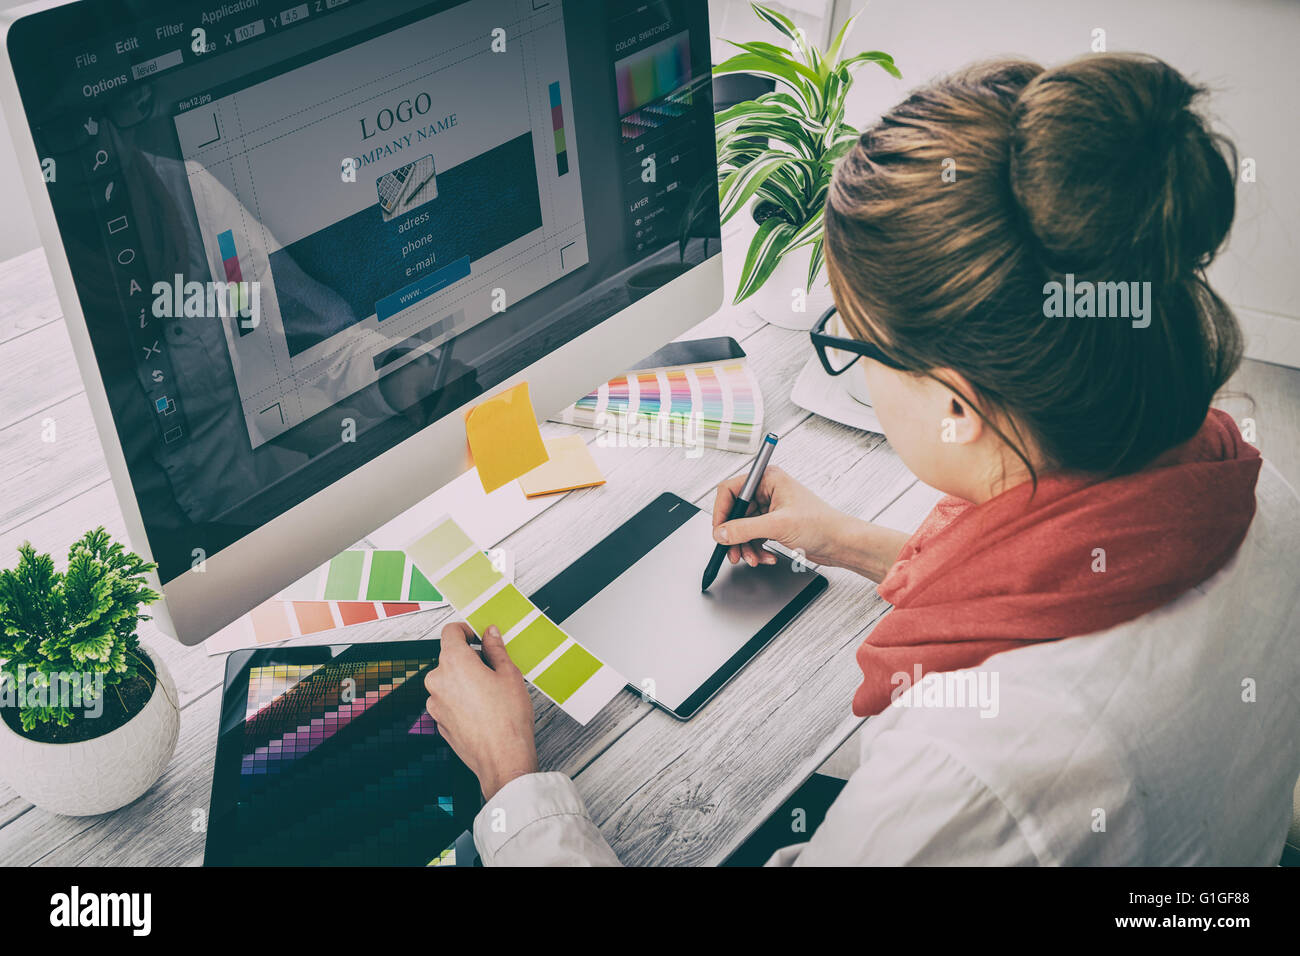 Graphic designer at work. Color swatch samples. - Stock Image